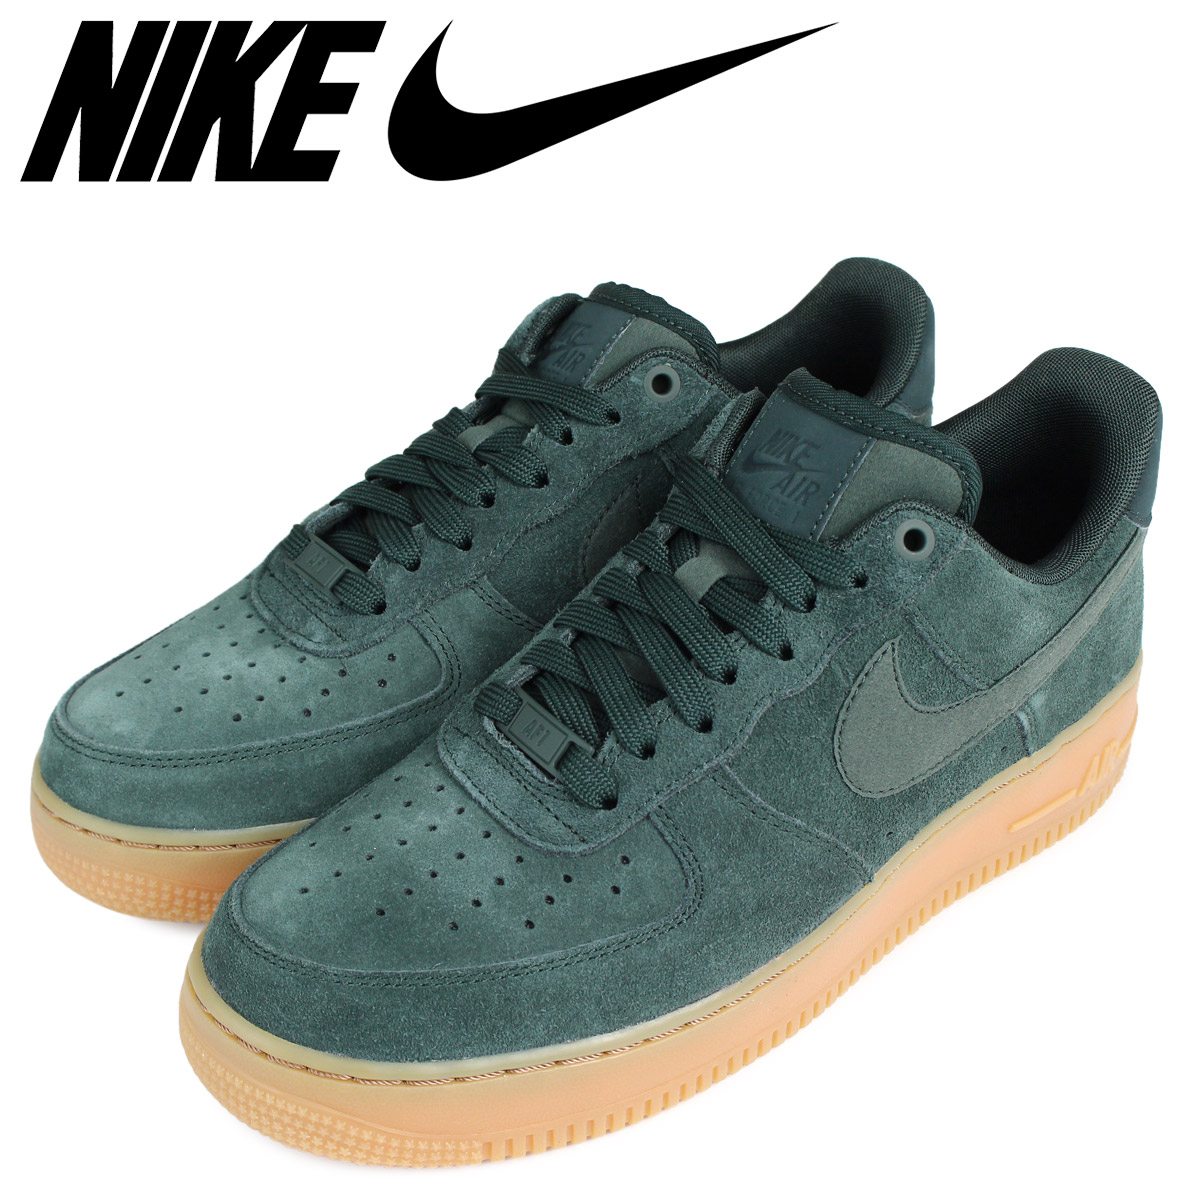 Sugar Online Shop  NIKE Nike air force 1 07 LV8 sneakers AIR FORCE 1 ... 123ee4a4e